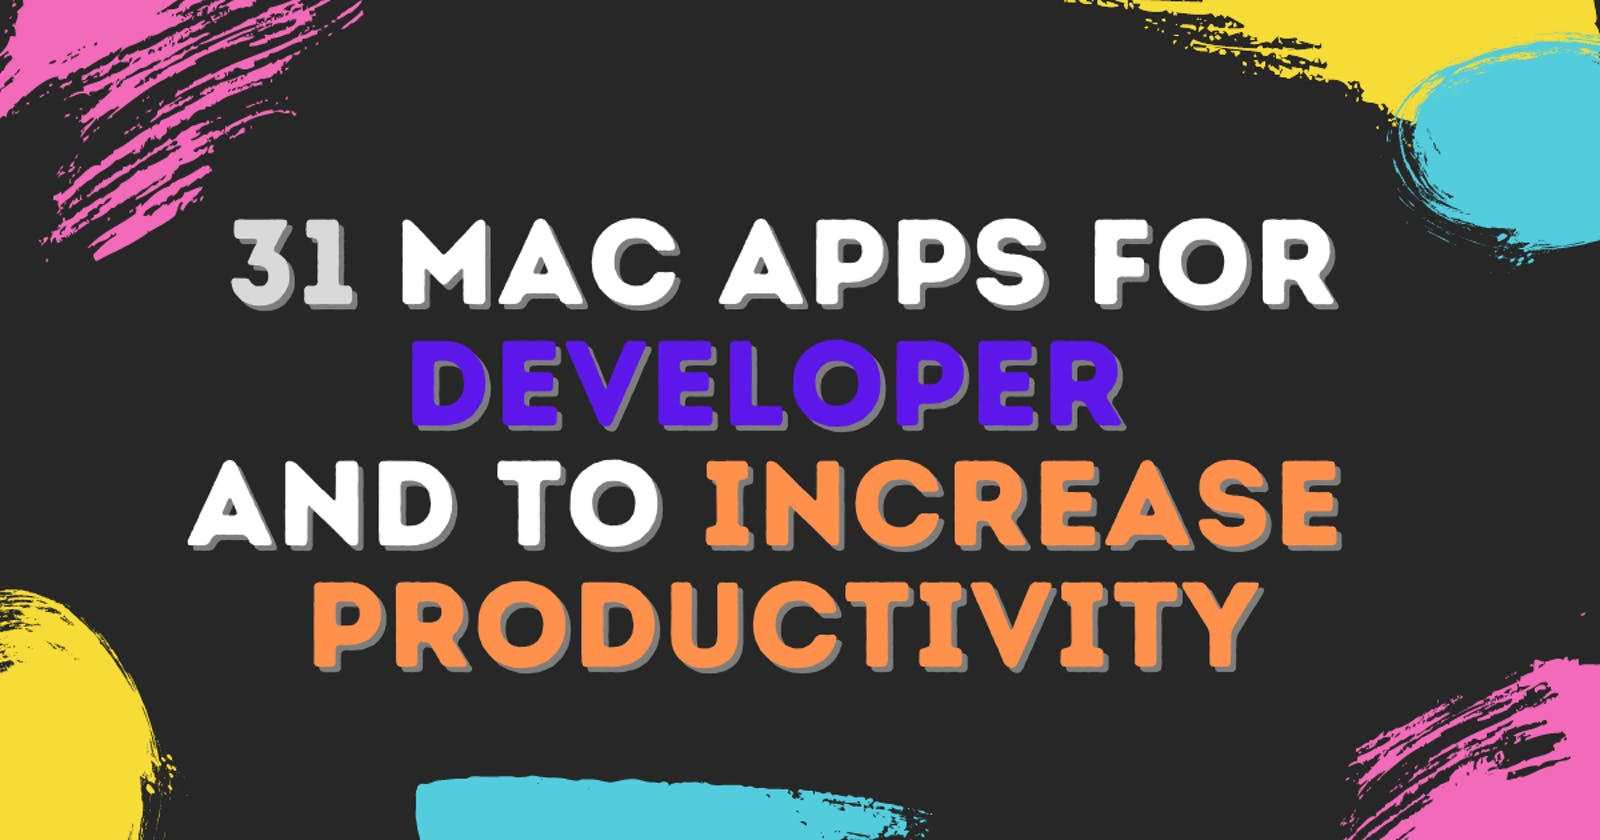 31 Mac apps for Developer and to increase Productivity